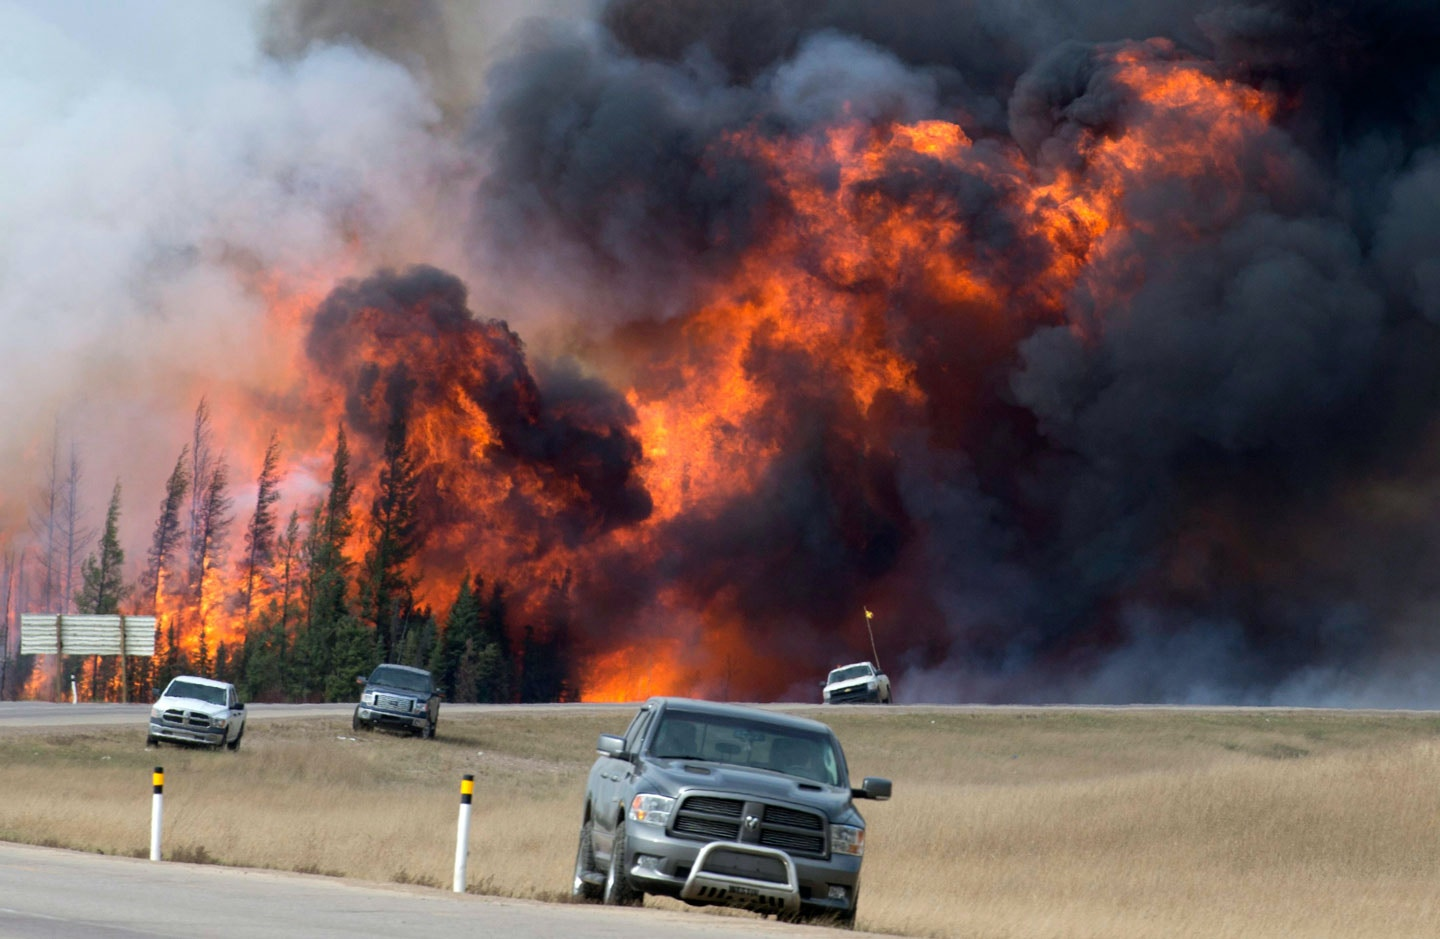 A wildfire burns south of Fort McMurray, Alberta, near Highway 63 on Saturday, May 7, 2016. Canadian officials hoped to complete the mass evacuation of work camps north of Alberta's main oil sands city of Fort McMurray on Saturday, fearing the growing wildfire could double in size and reach a major oil sands mine and even the neighboring province of Saskatchewan.  (Jonathan Hayward /The Canadian Press via AP) MANDATORY CREDIT